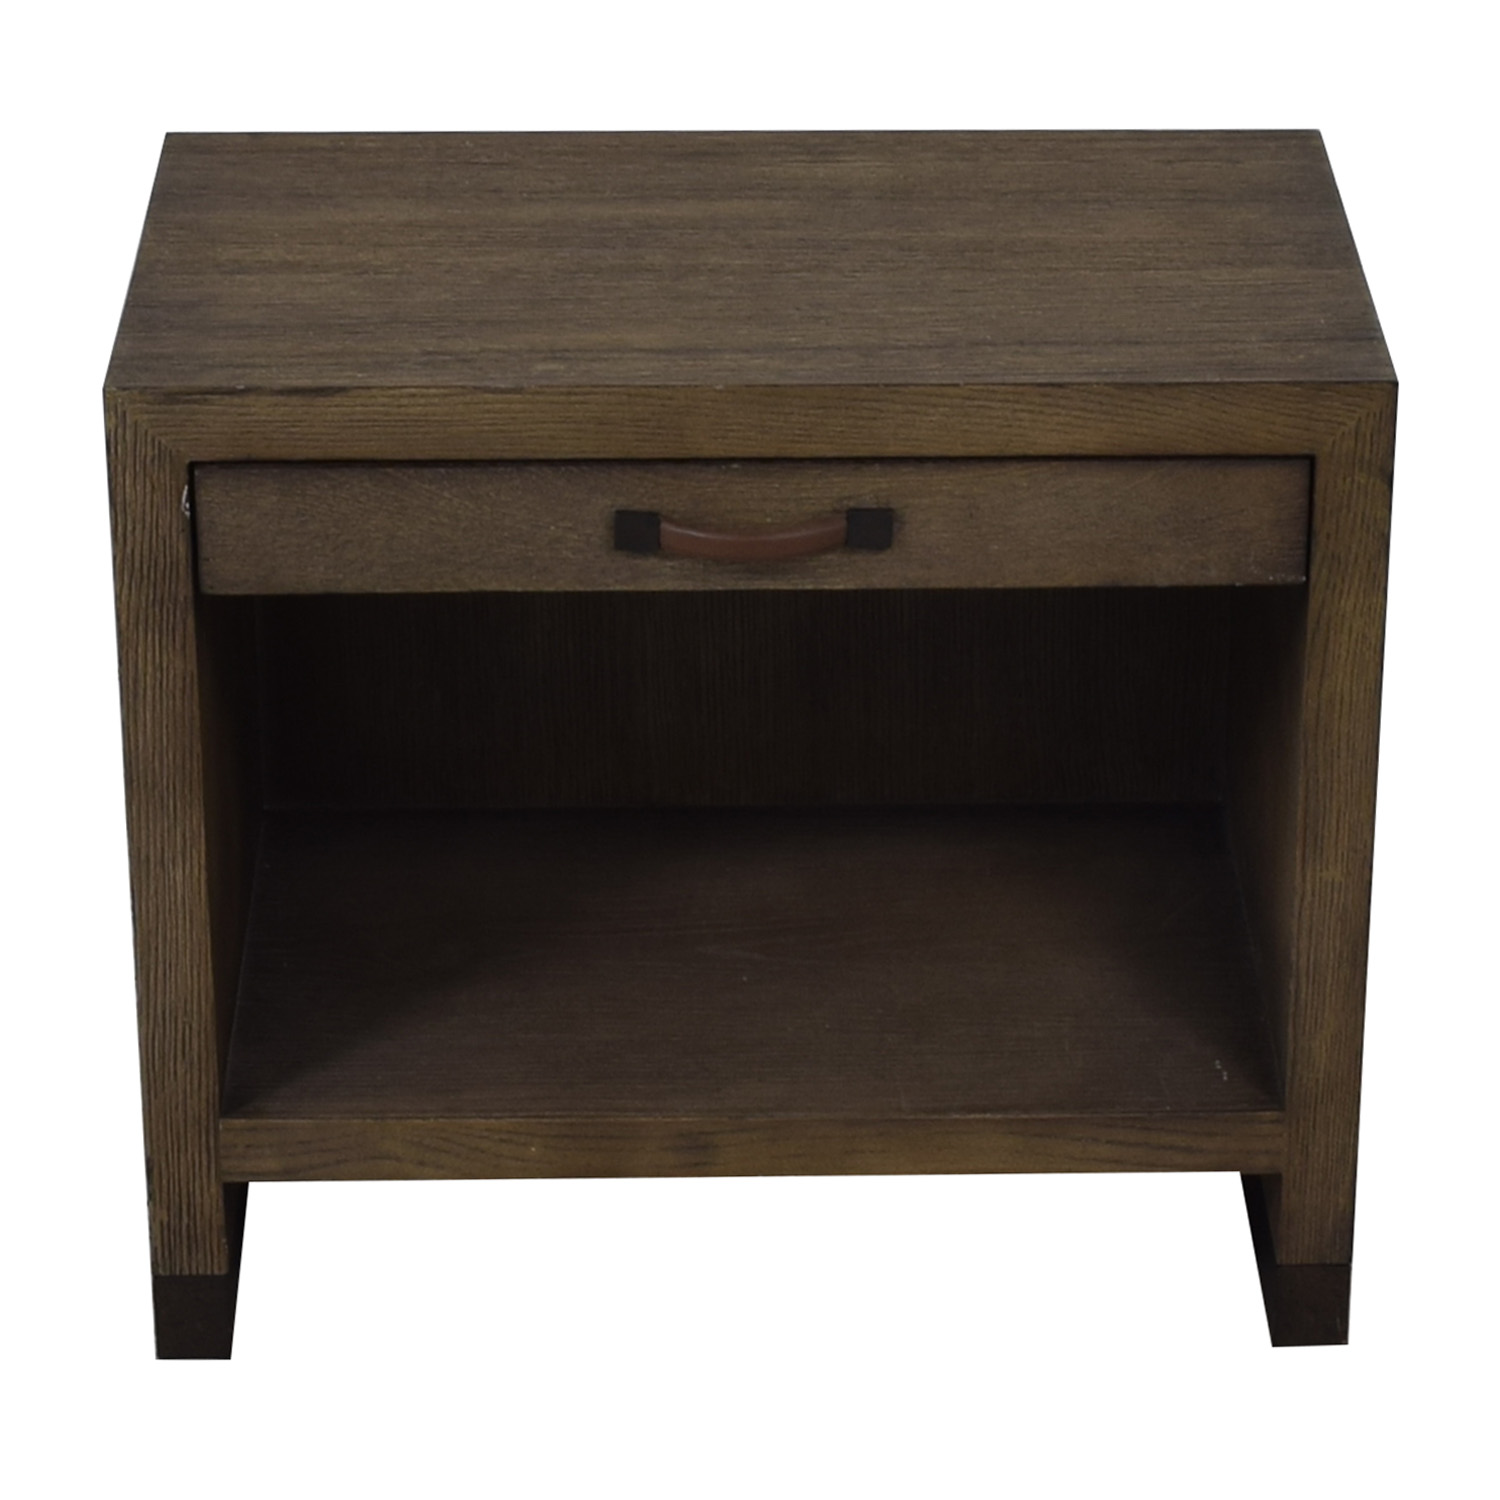 Lillian August Lillian August For Hickory White Conner Grey Nightstand nyc